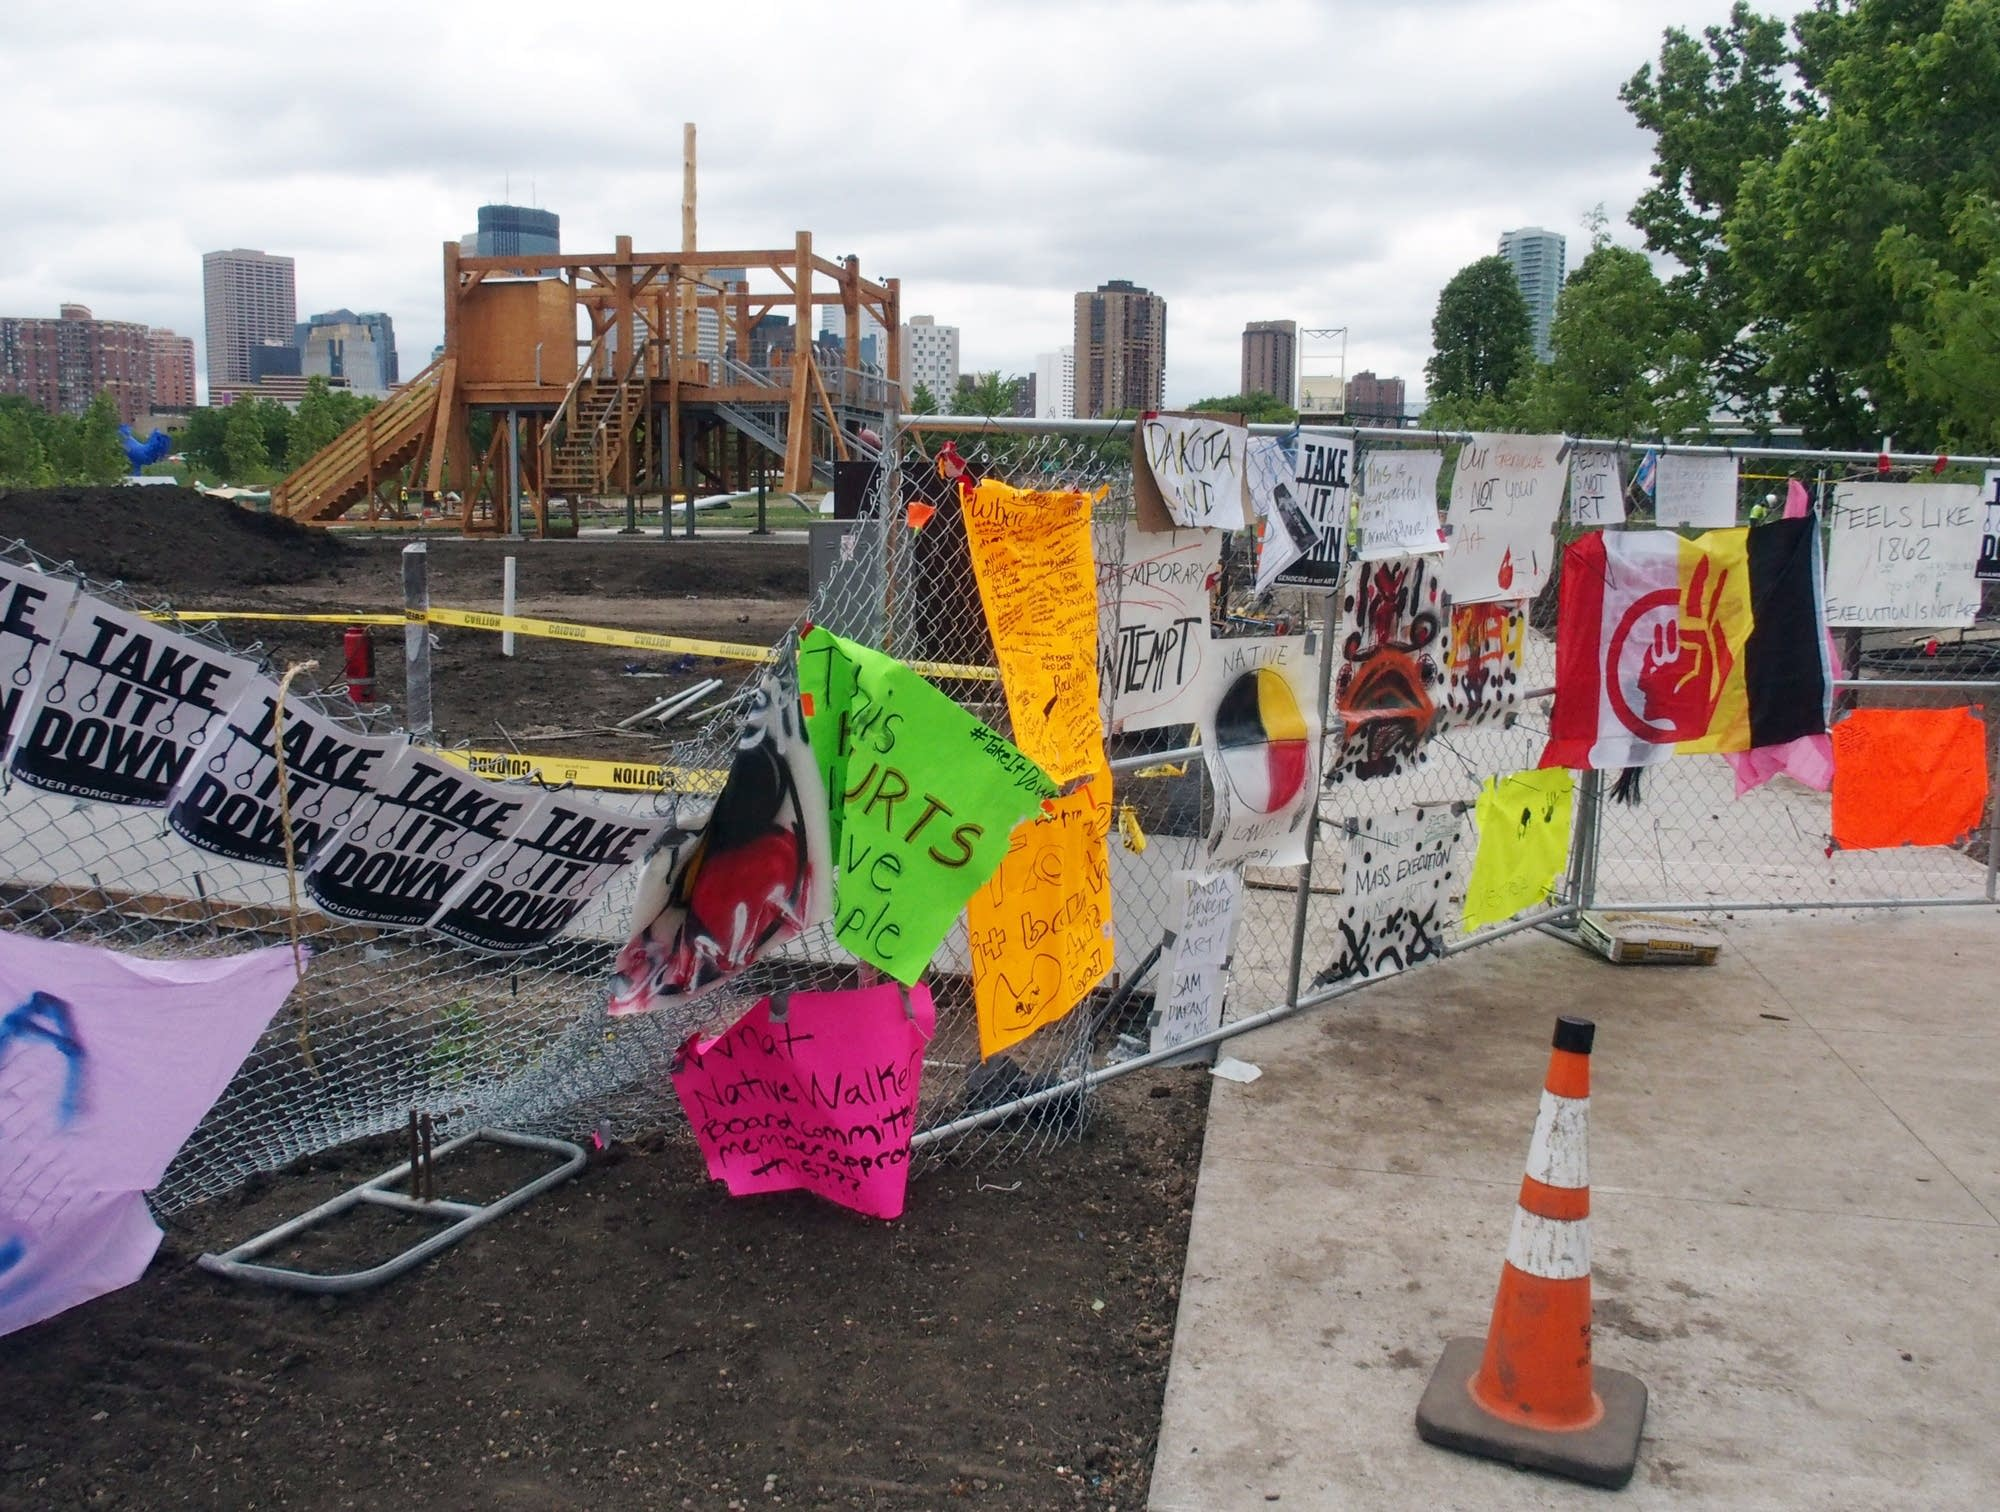 The sculpture stands behind a fence covered with banners and posters.